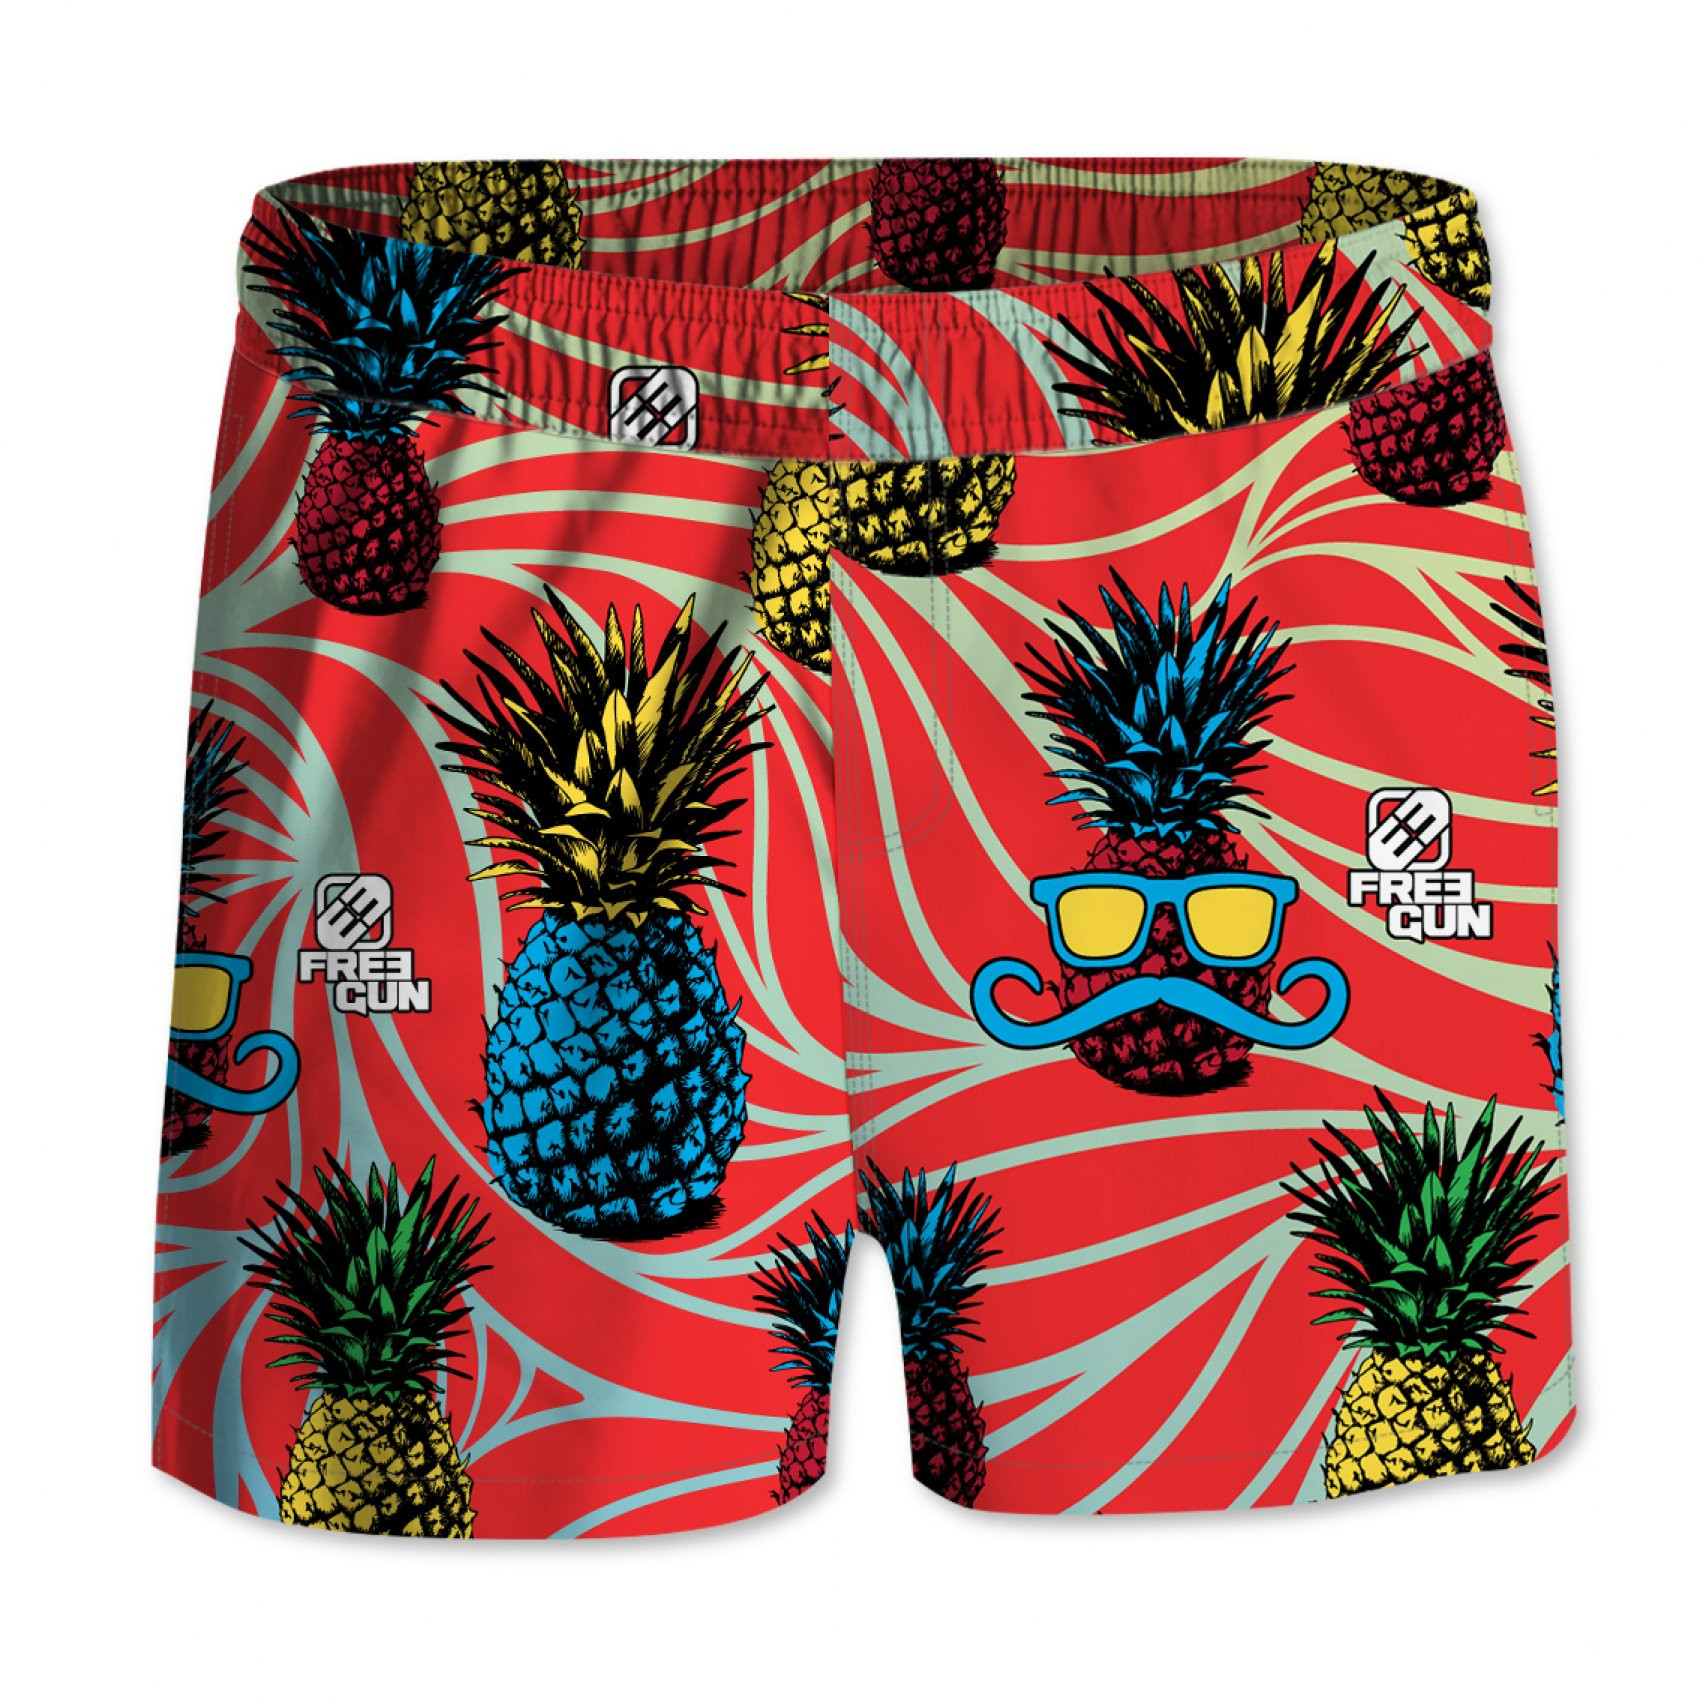 Maillot de bain babyz boardshort freegun bébé (photo)